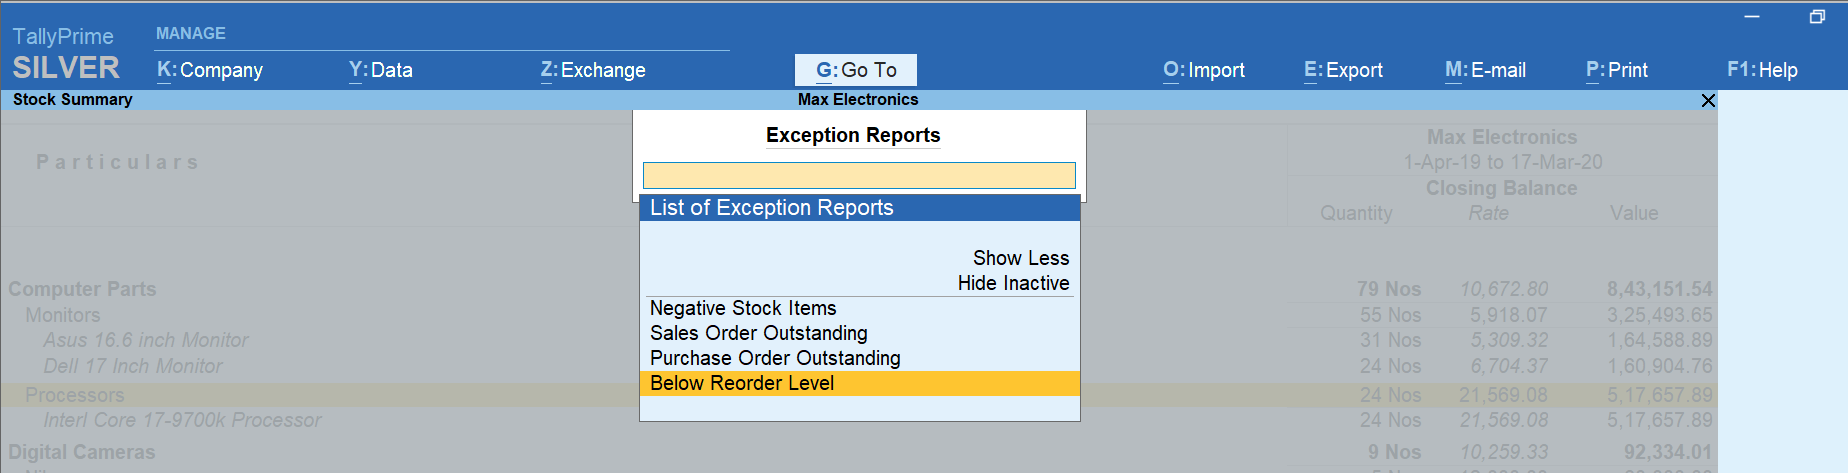 exception reports tallyprime